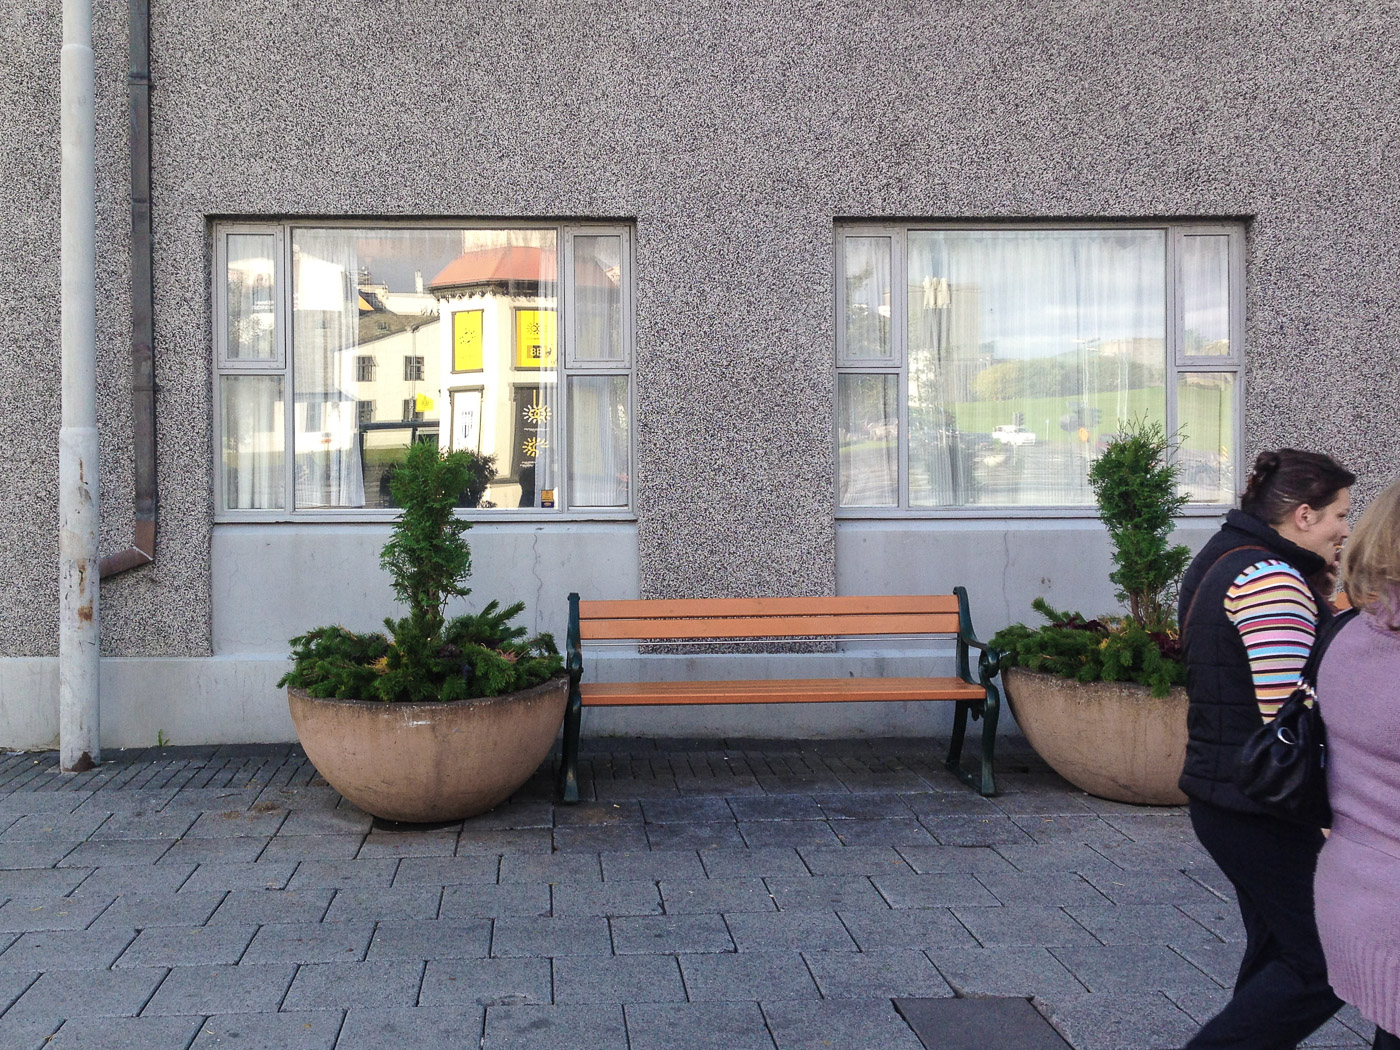 Reykjav&iacute;k. &quot;Meine Banken&quot; 4 September 2014. - &quot;Meine Banken&quot; looked like this today! Or like <a href='/14-08/b7116e.php' target='_blank' class='linksnormal'>this</a> on 22 August 2014! (4 September 2014)